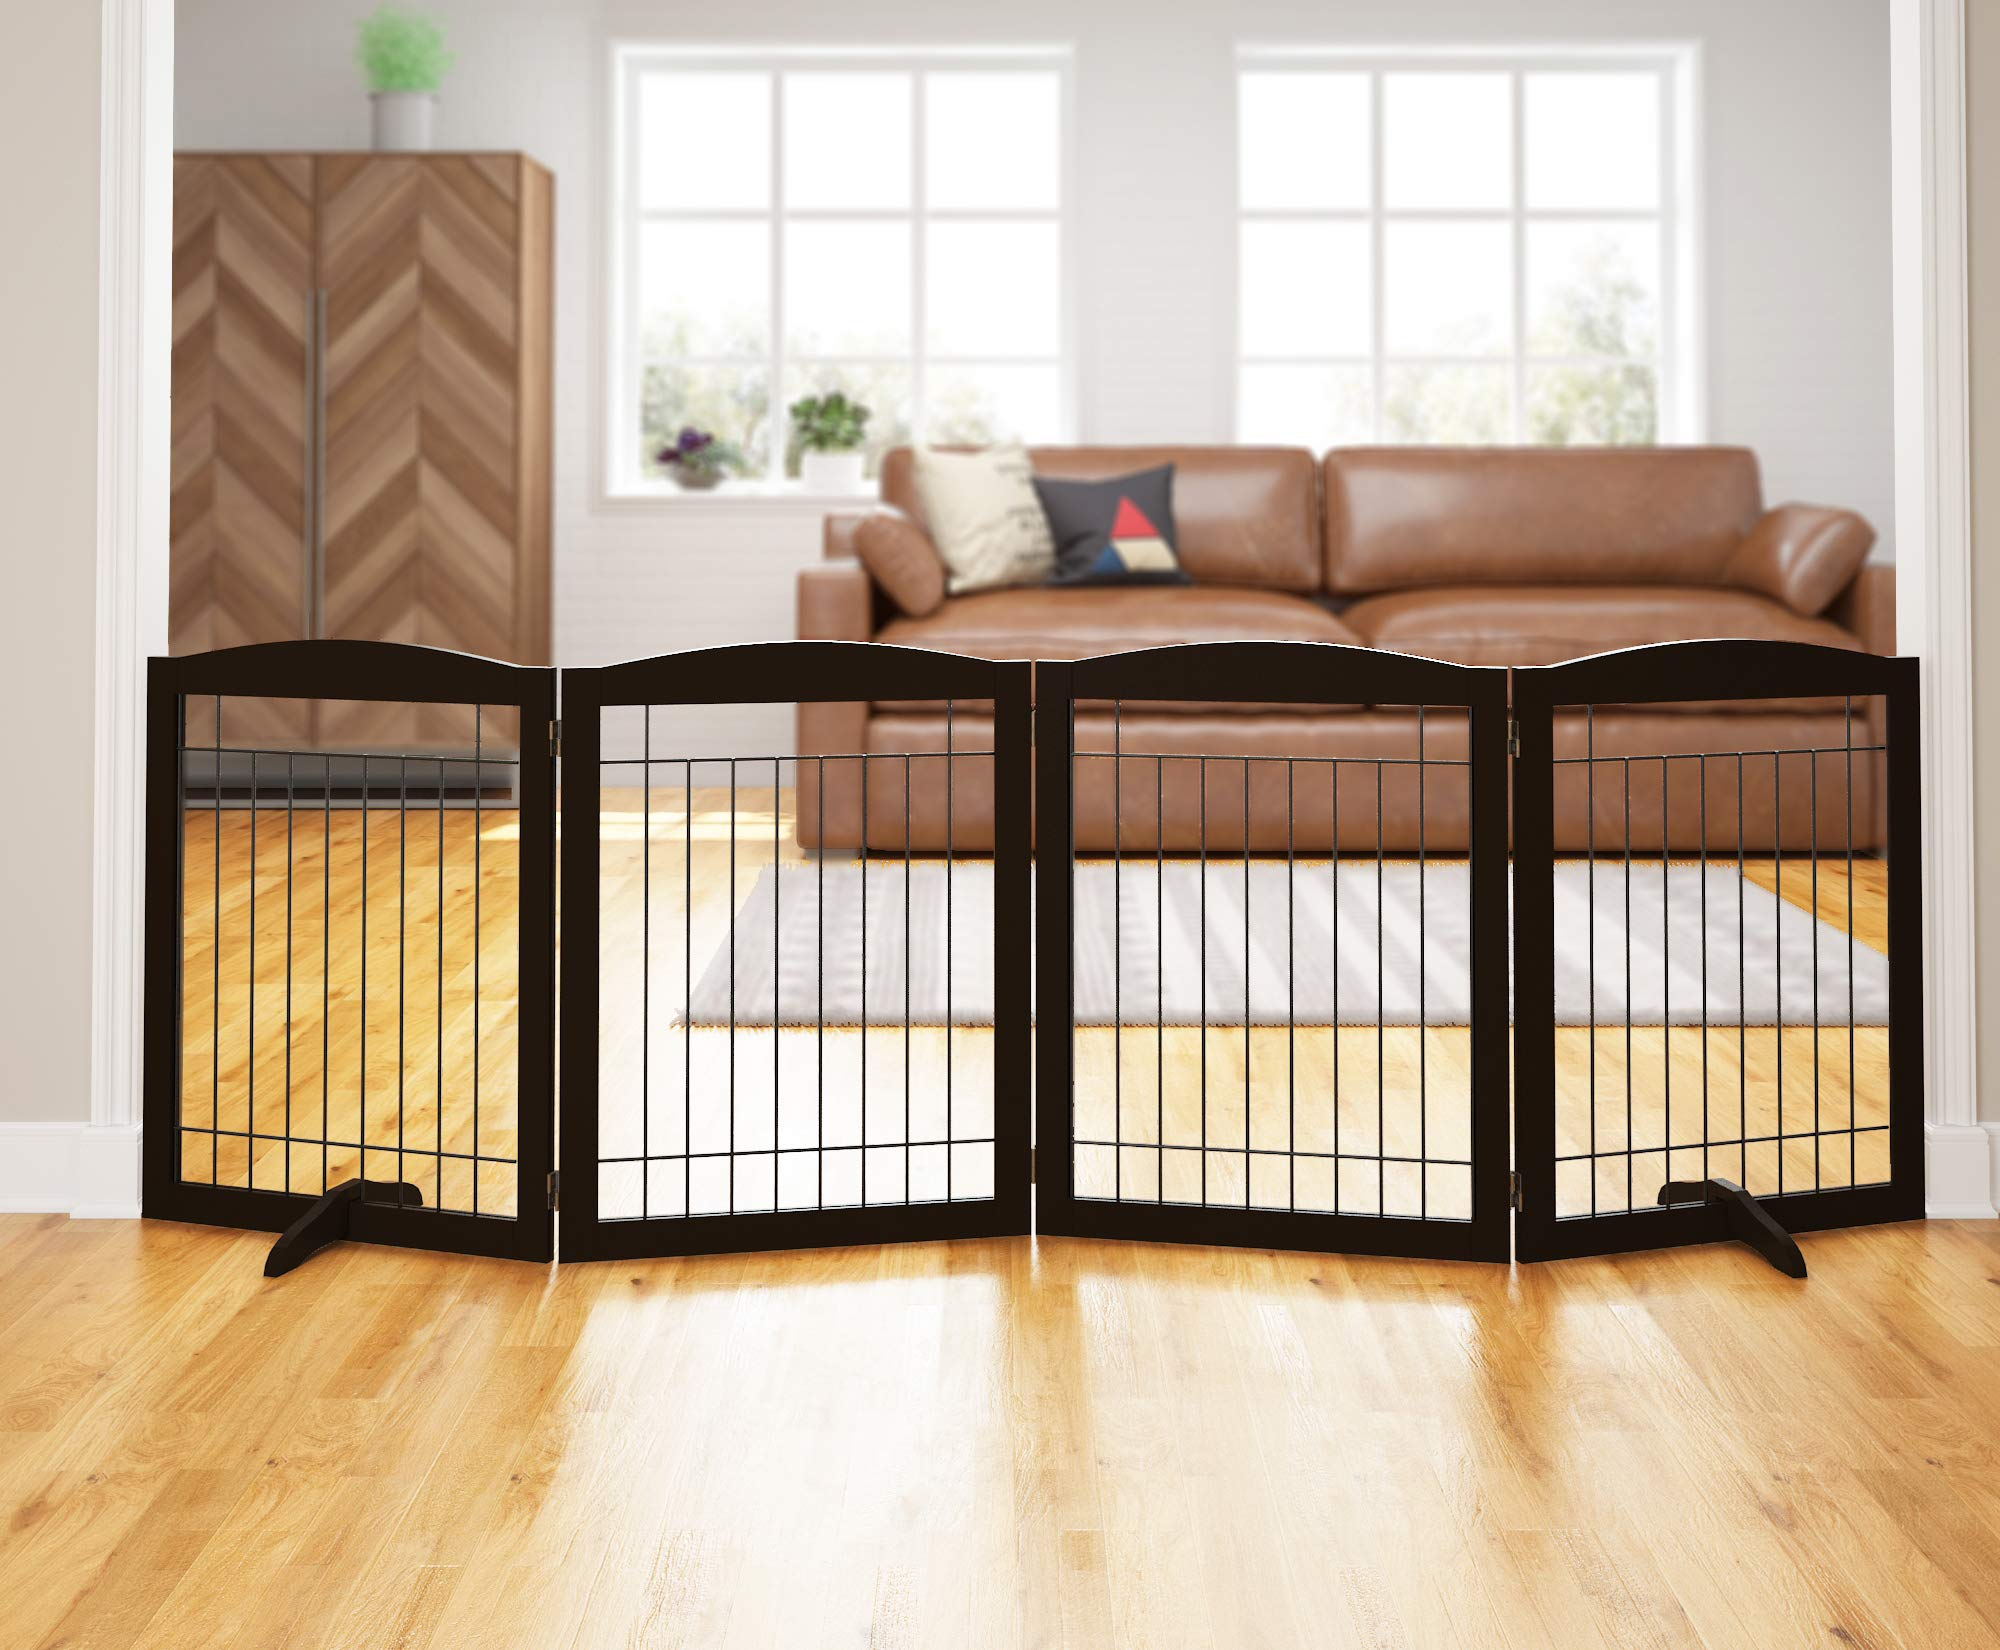 PAWLAND 96-inch Extra Wide Dog gate for The House, Doorway, Stairs, Freestanding Foldable Wire Pet Gate, Pet Puppy Safety Fence,Set of Support Feet Included (Espresso, 30'' Height-4 Panels) by PAWLAND